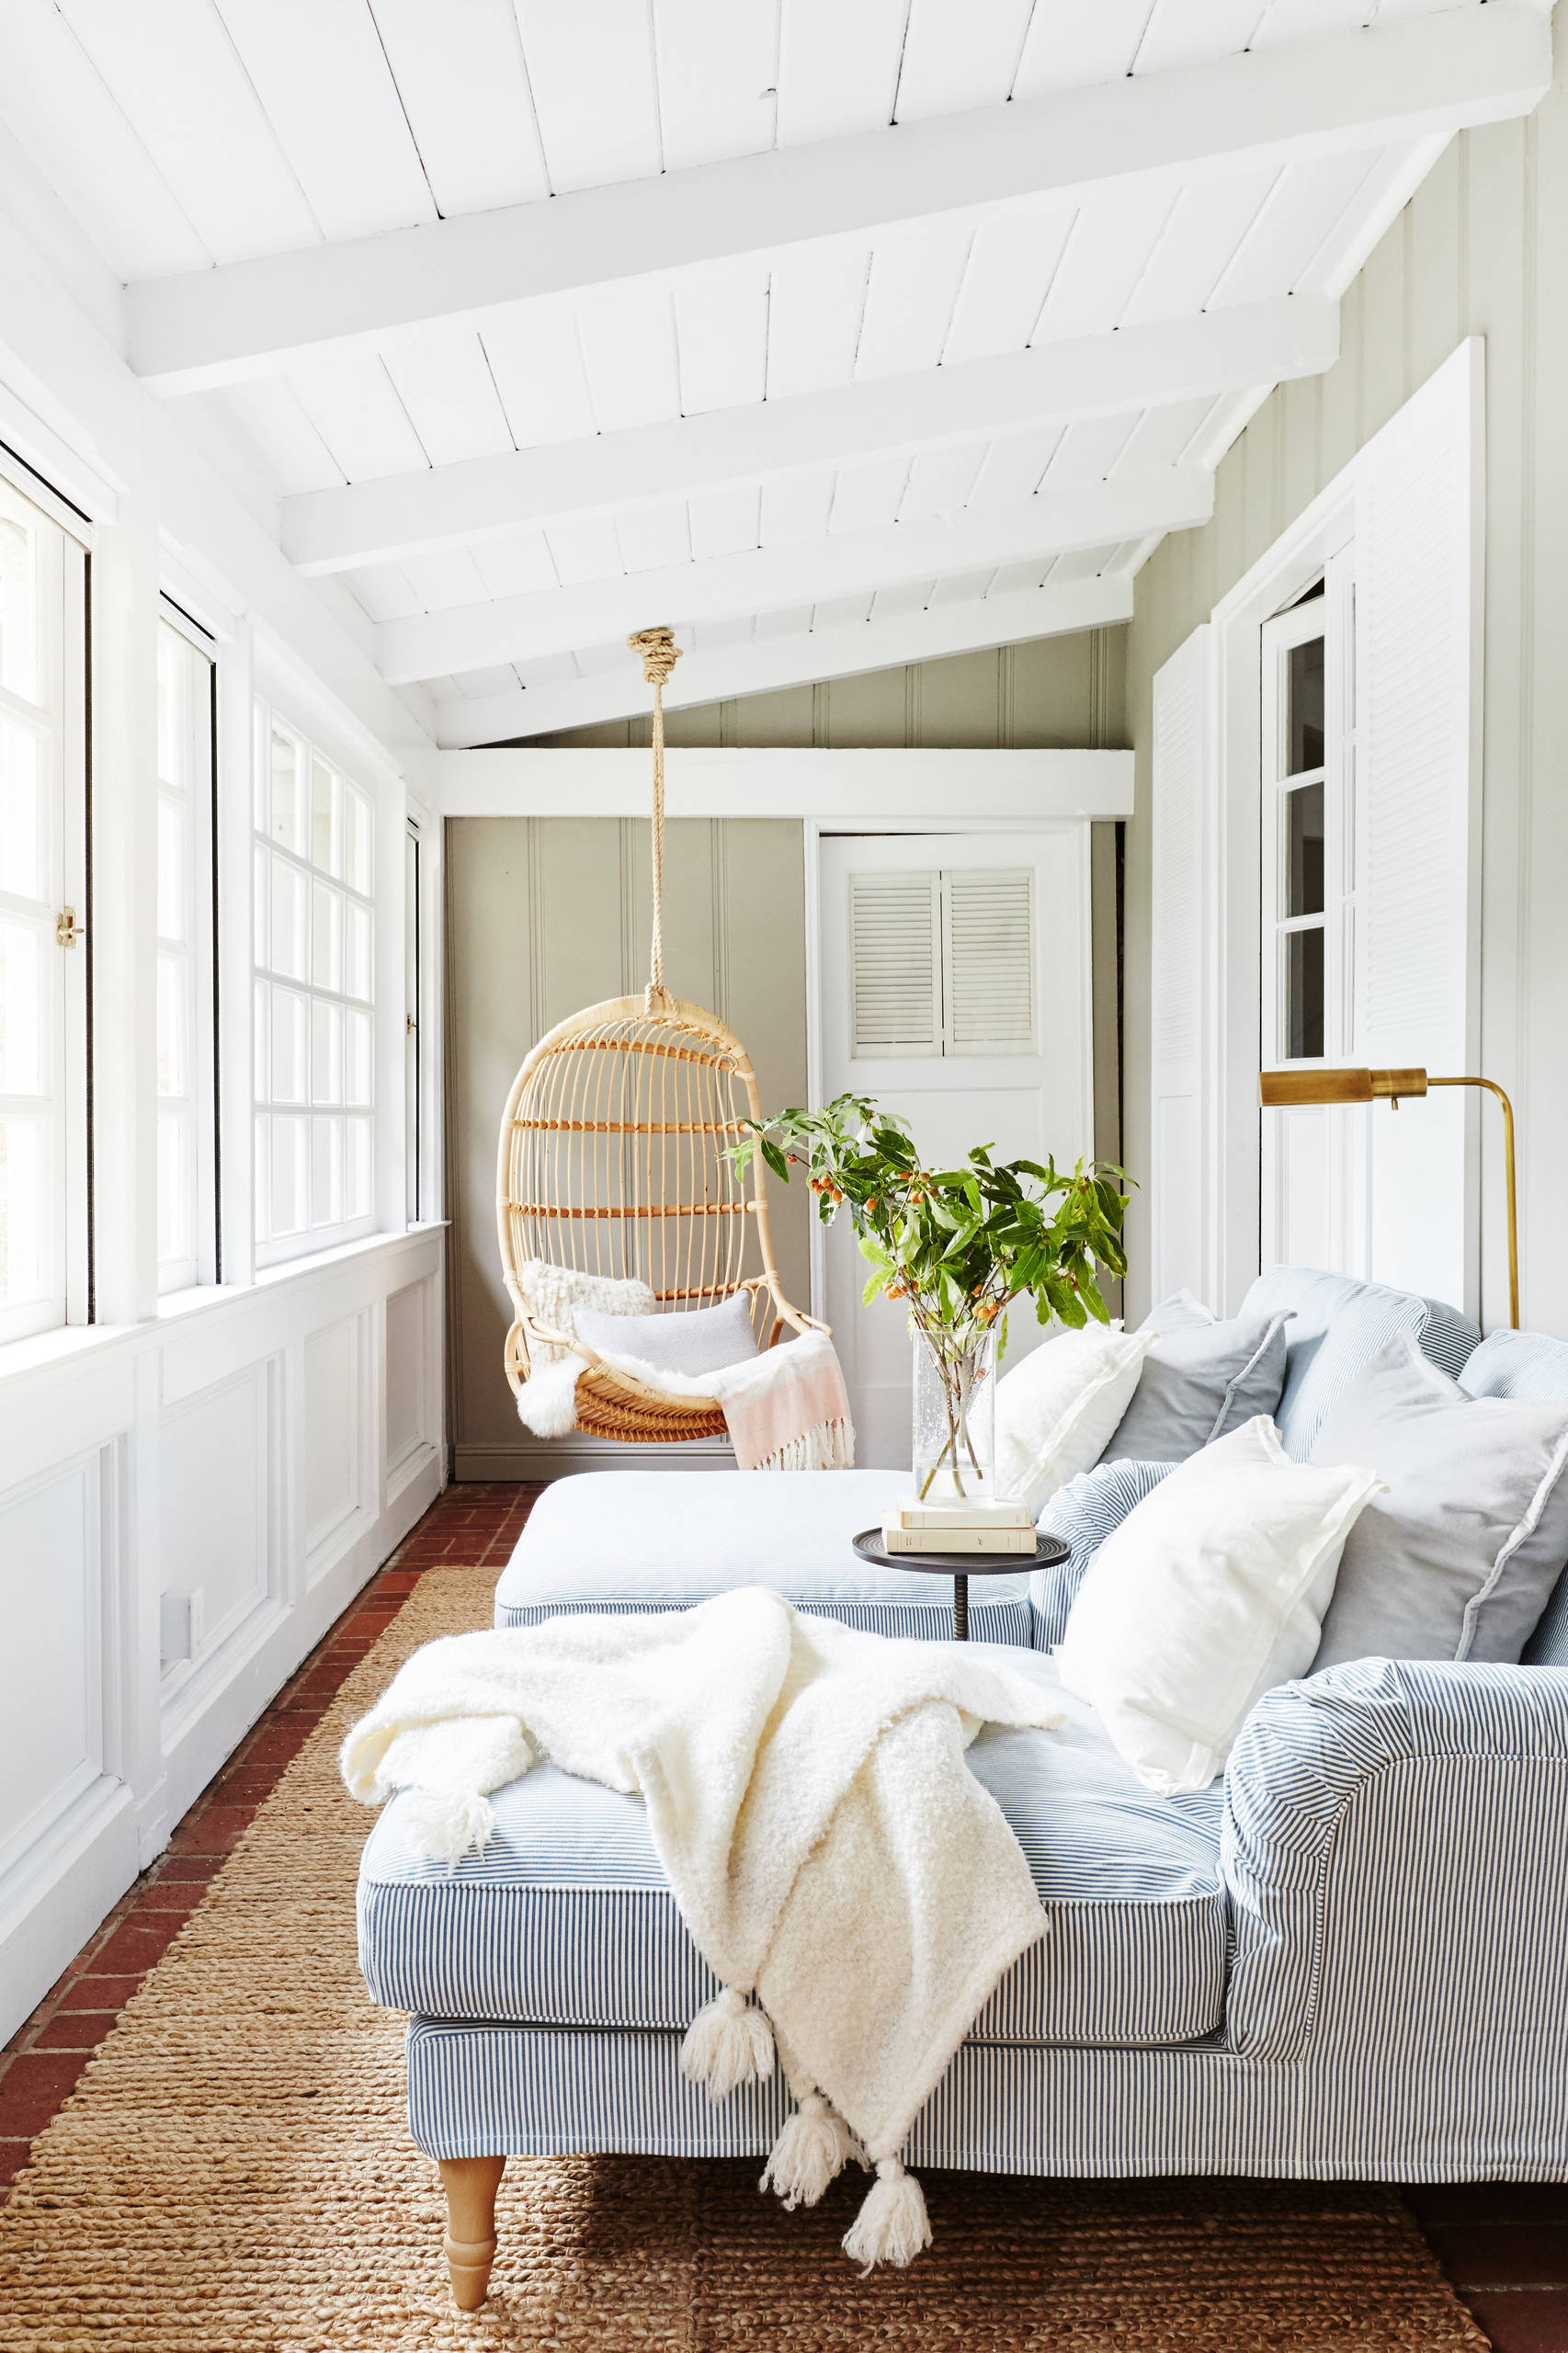 8 Beautiful Sunroom Pictures & Ideas - August, 8  Houzz